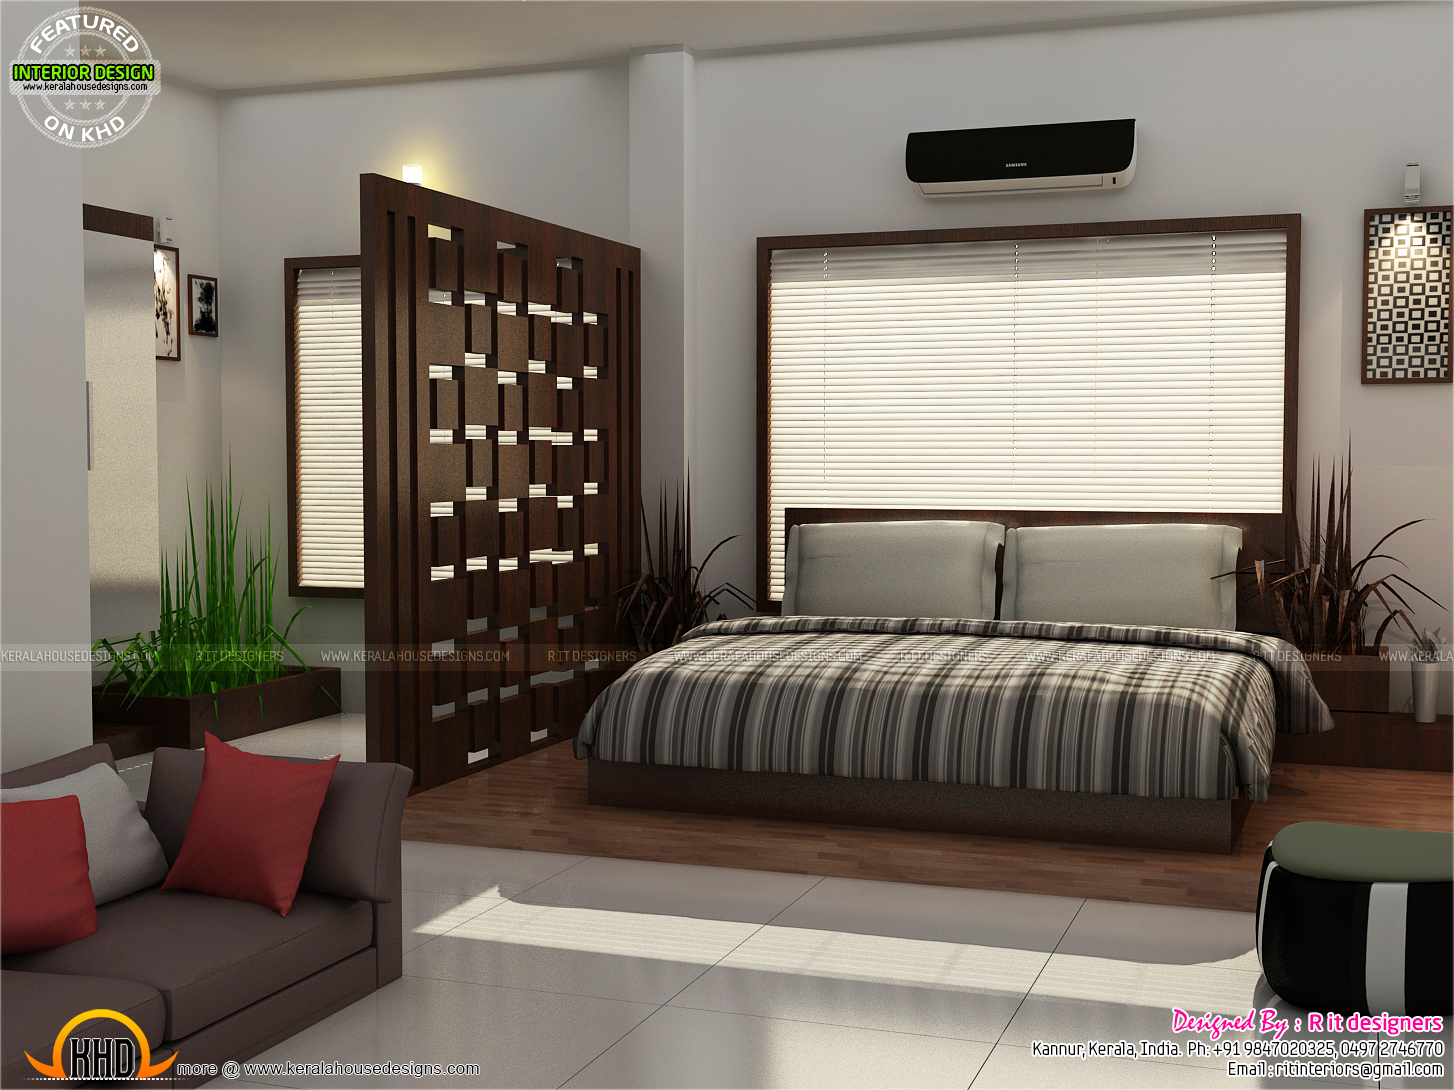 Beautiful living room bedroom kitchen kerala home for Apartment design kerala